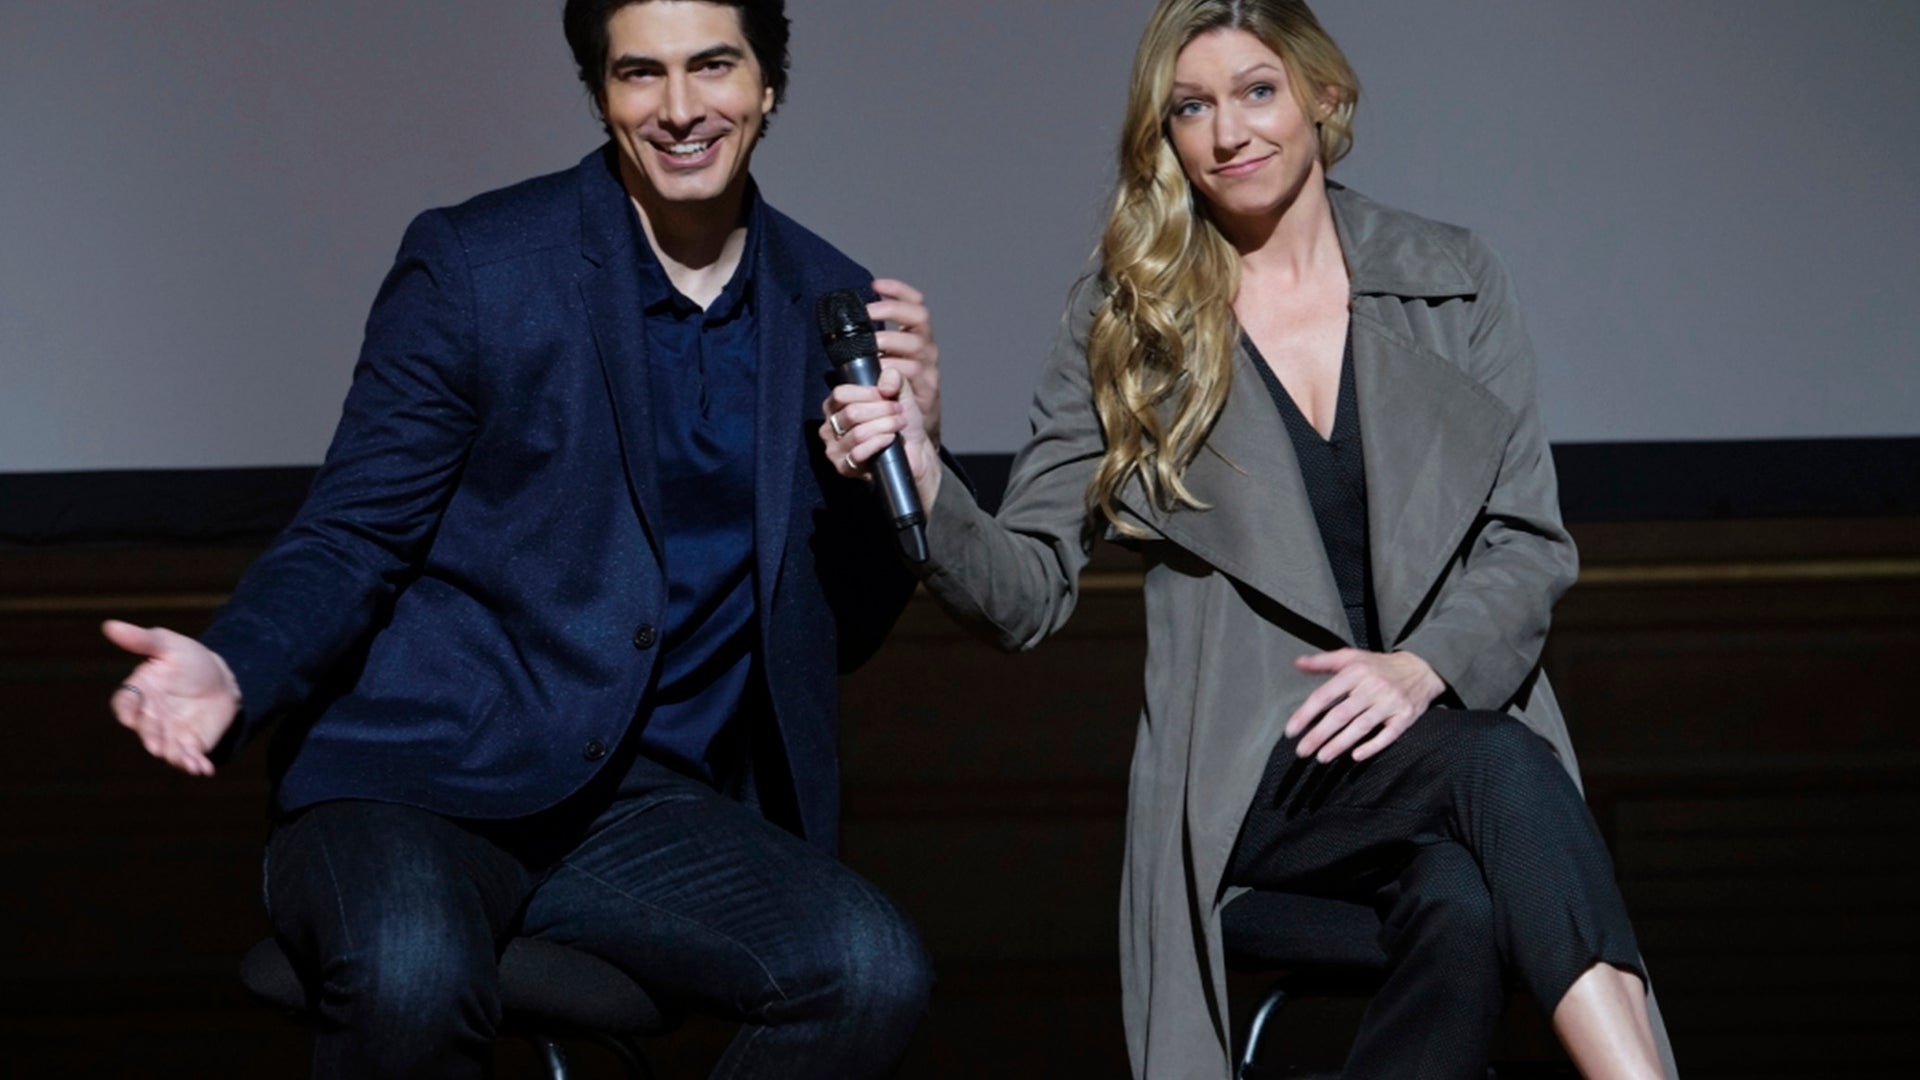 Brandon Routh and Jes Macallan, DC's Legends of Tomorrow